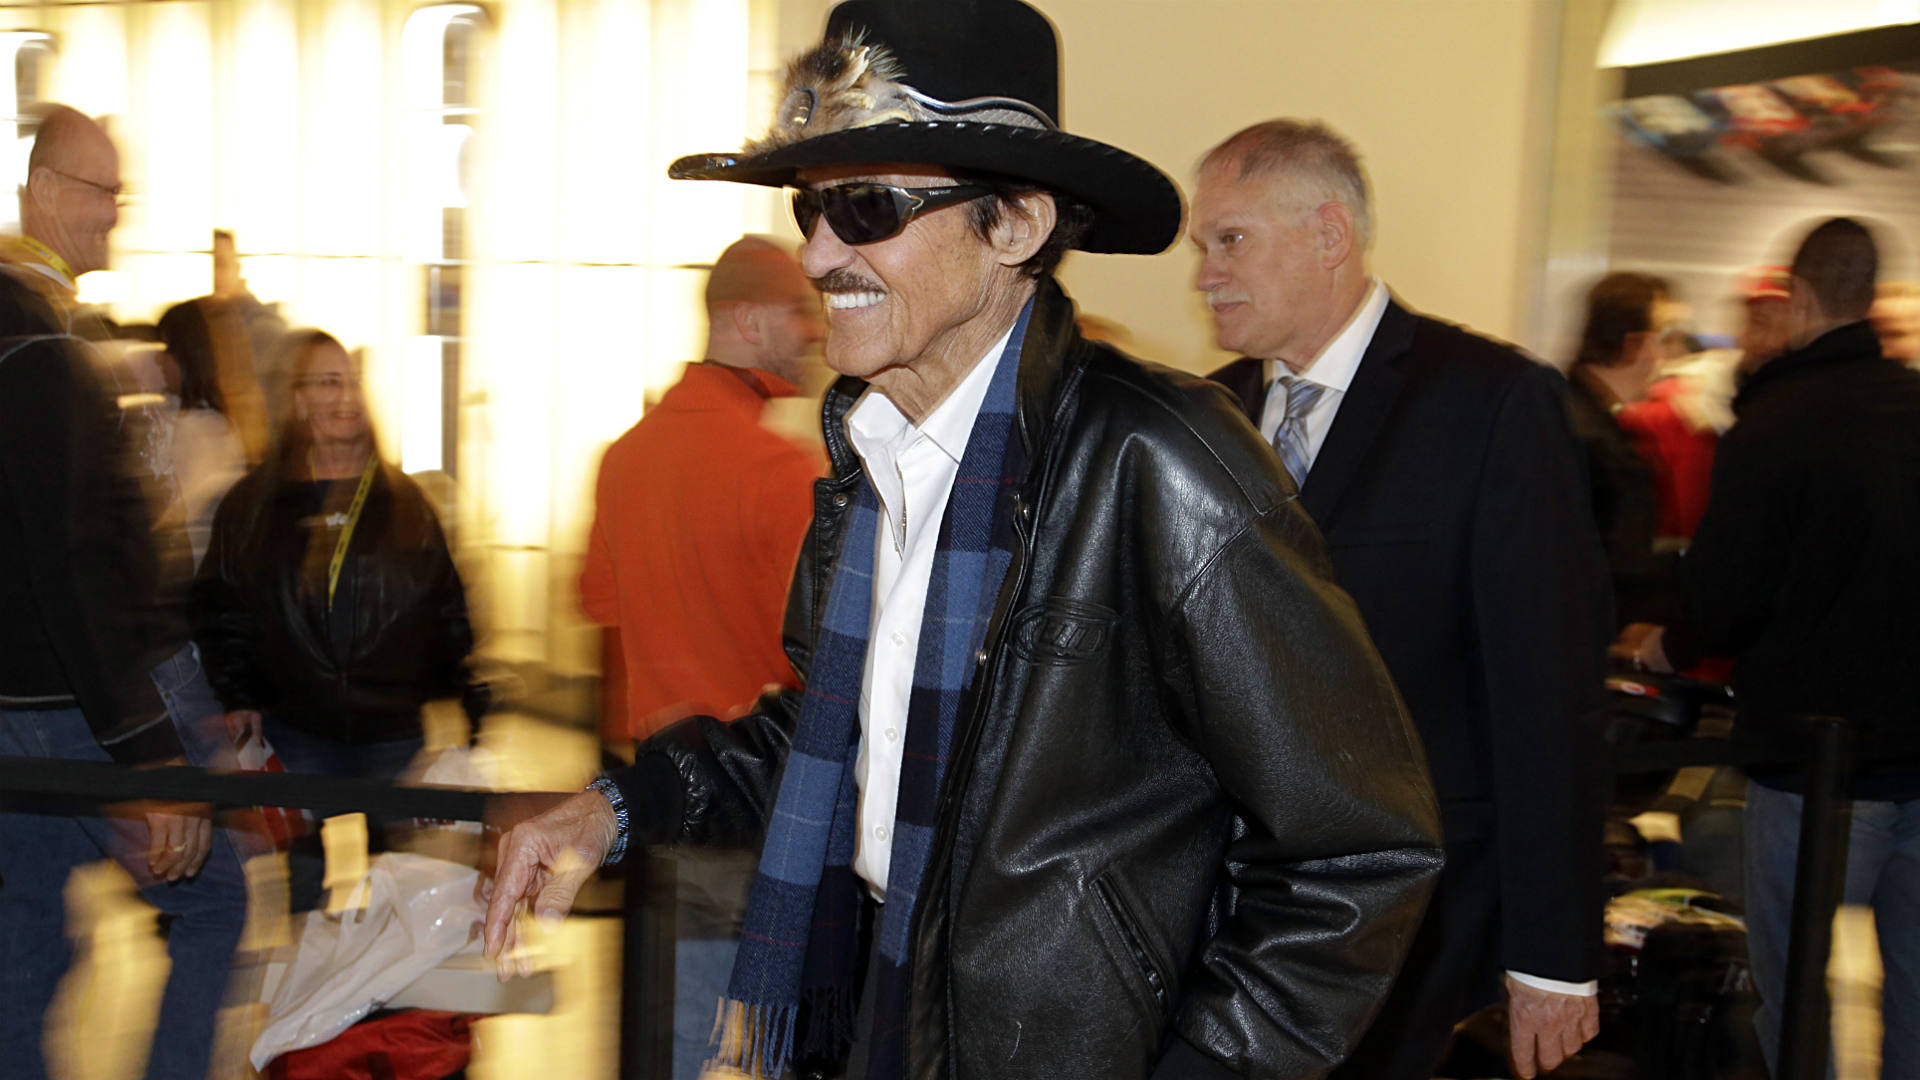 Richard-Petty-FTR-021014-AP